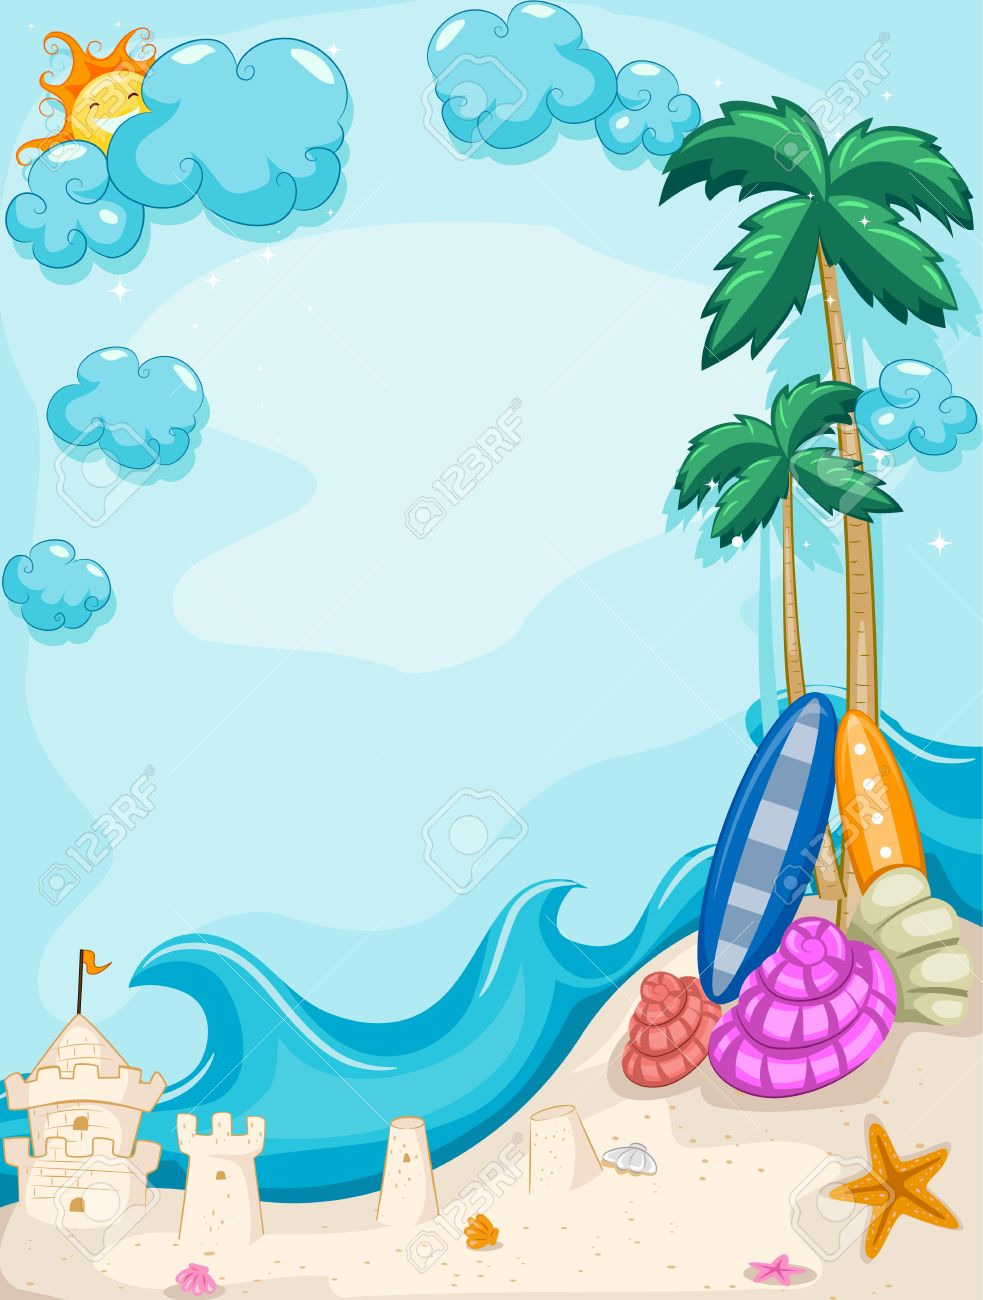 Summer background clipart 20 free Cliparts   Download ...